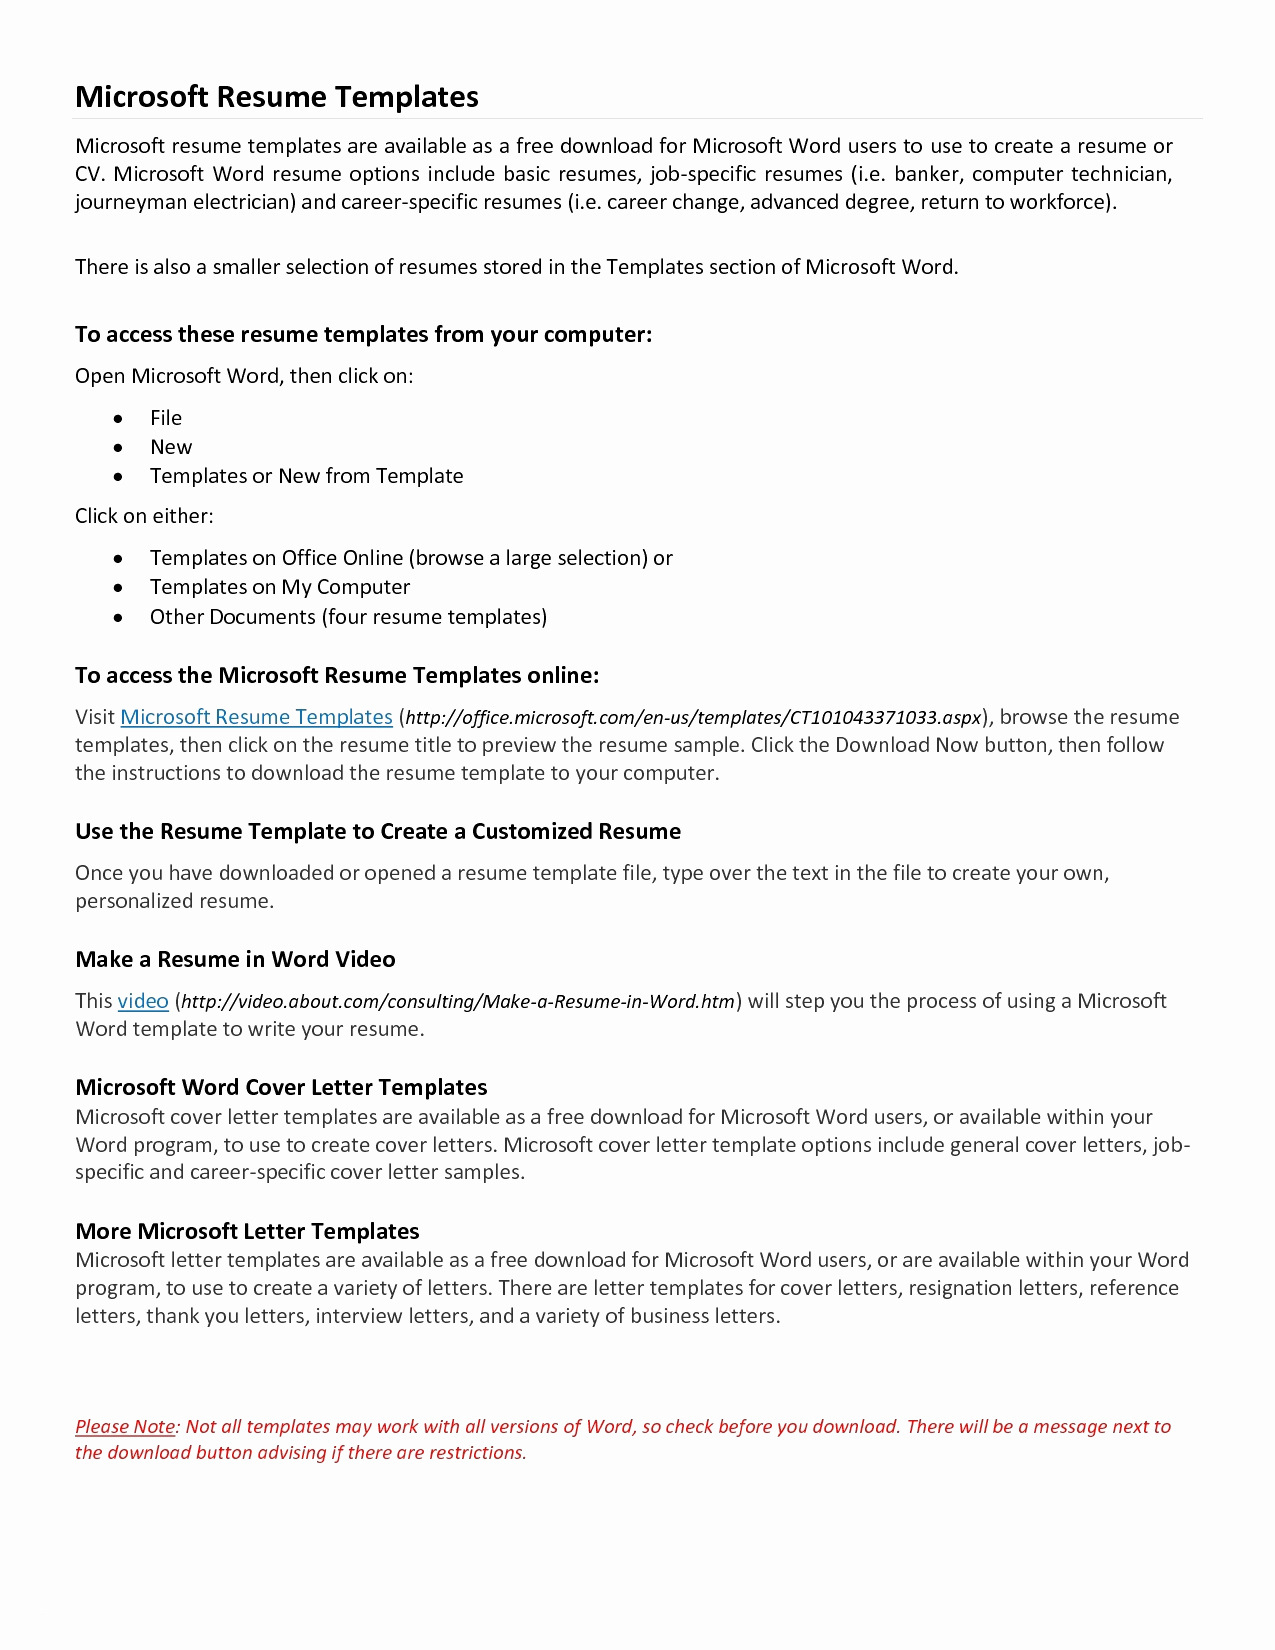 Business Cover Letter Template Microsoft Word - Free Microsoft Resume Templates New Microsoft Word Resume Sample